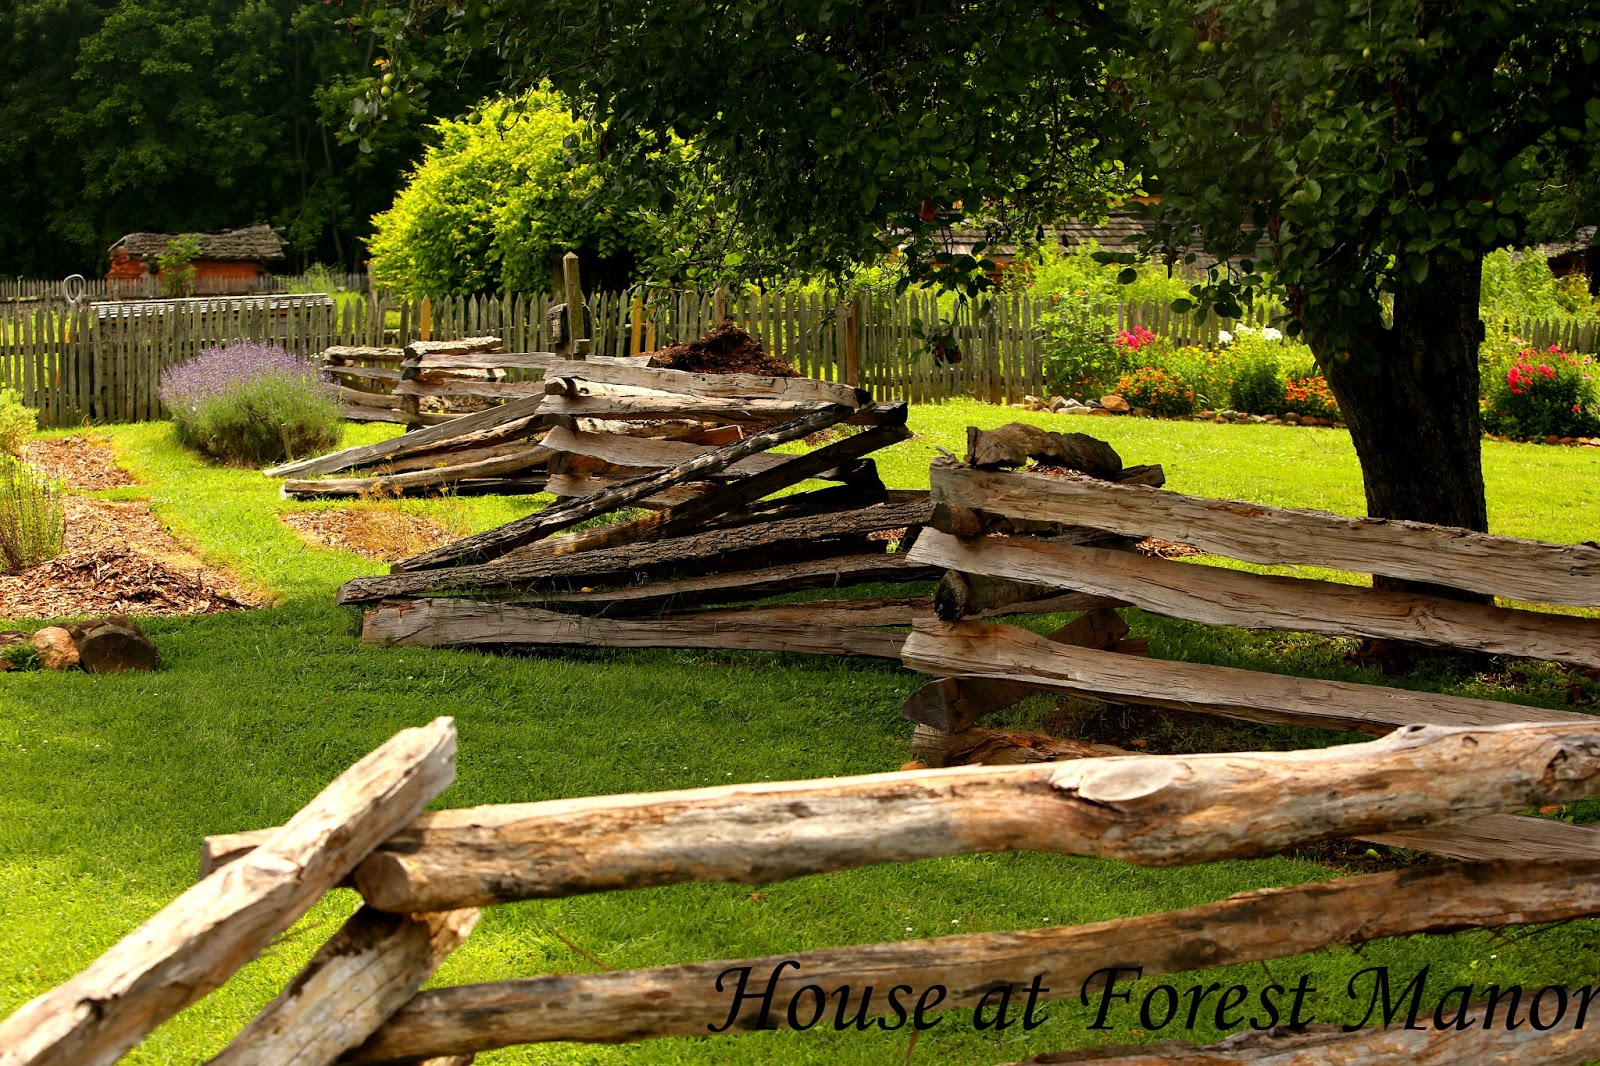 House at Forest Manor: The Gardens at Bethabara Park